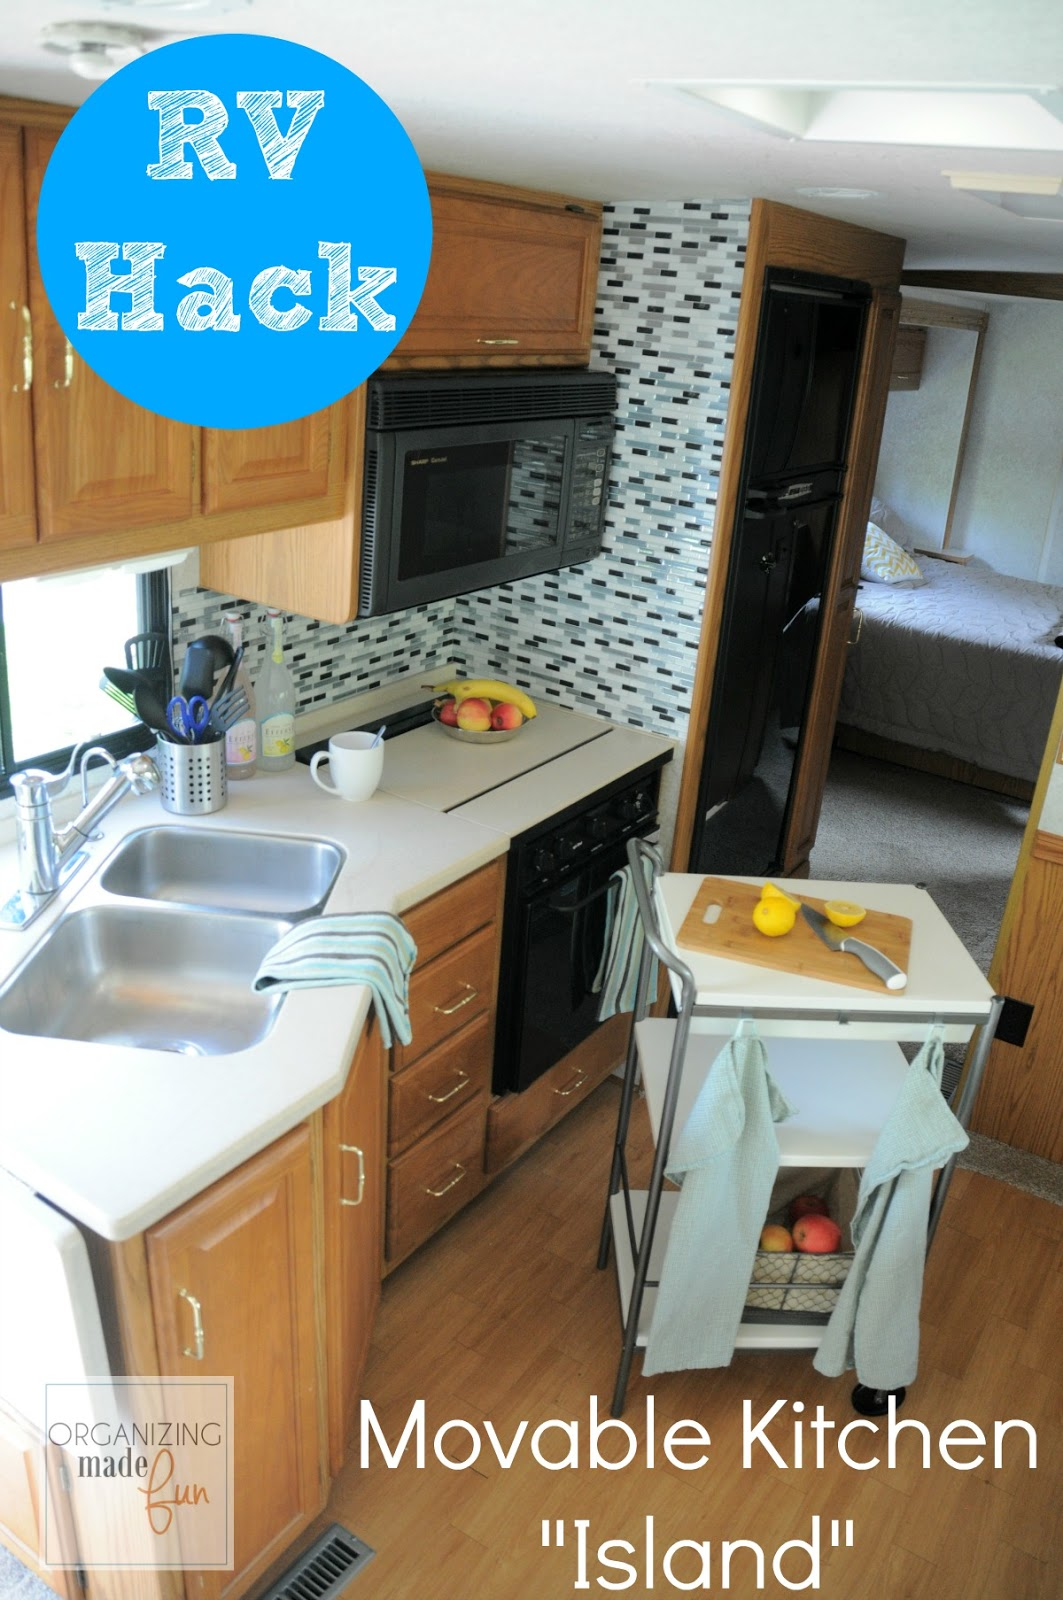 Rv Organizing And Storage Hacks Small Spaces Organizing Made Fun Rv Organizing And Storage